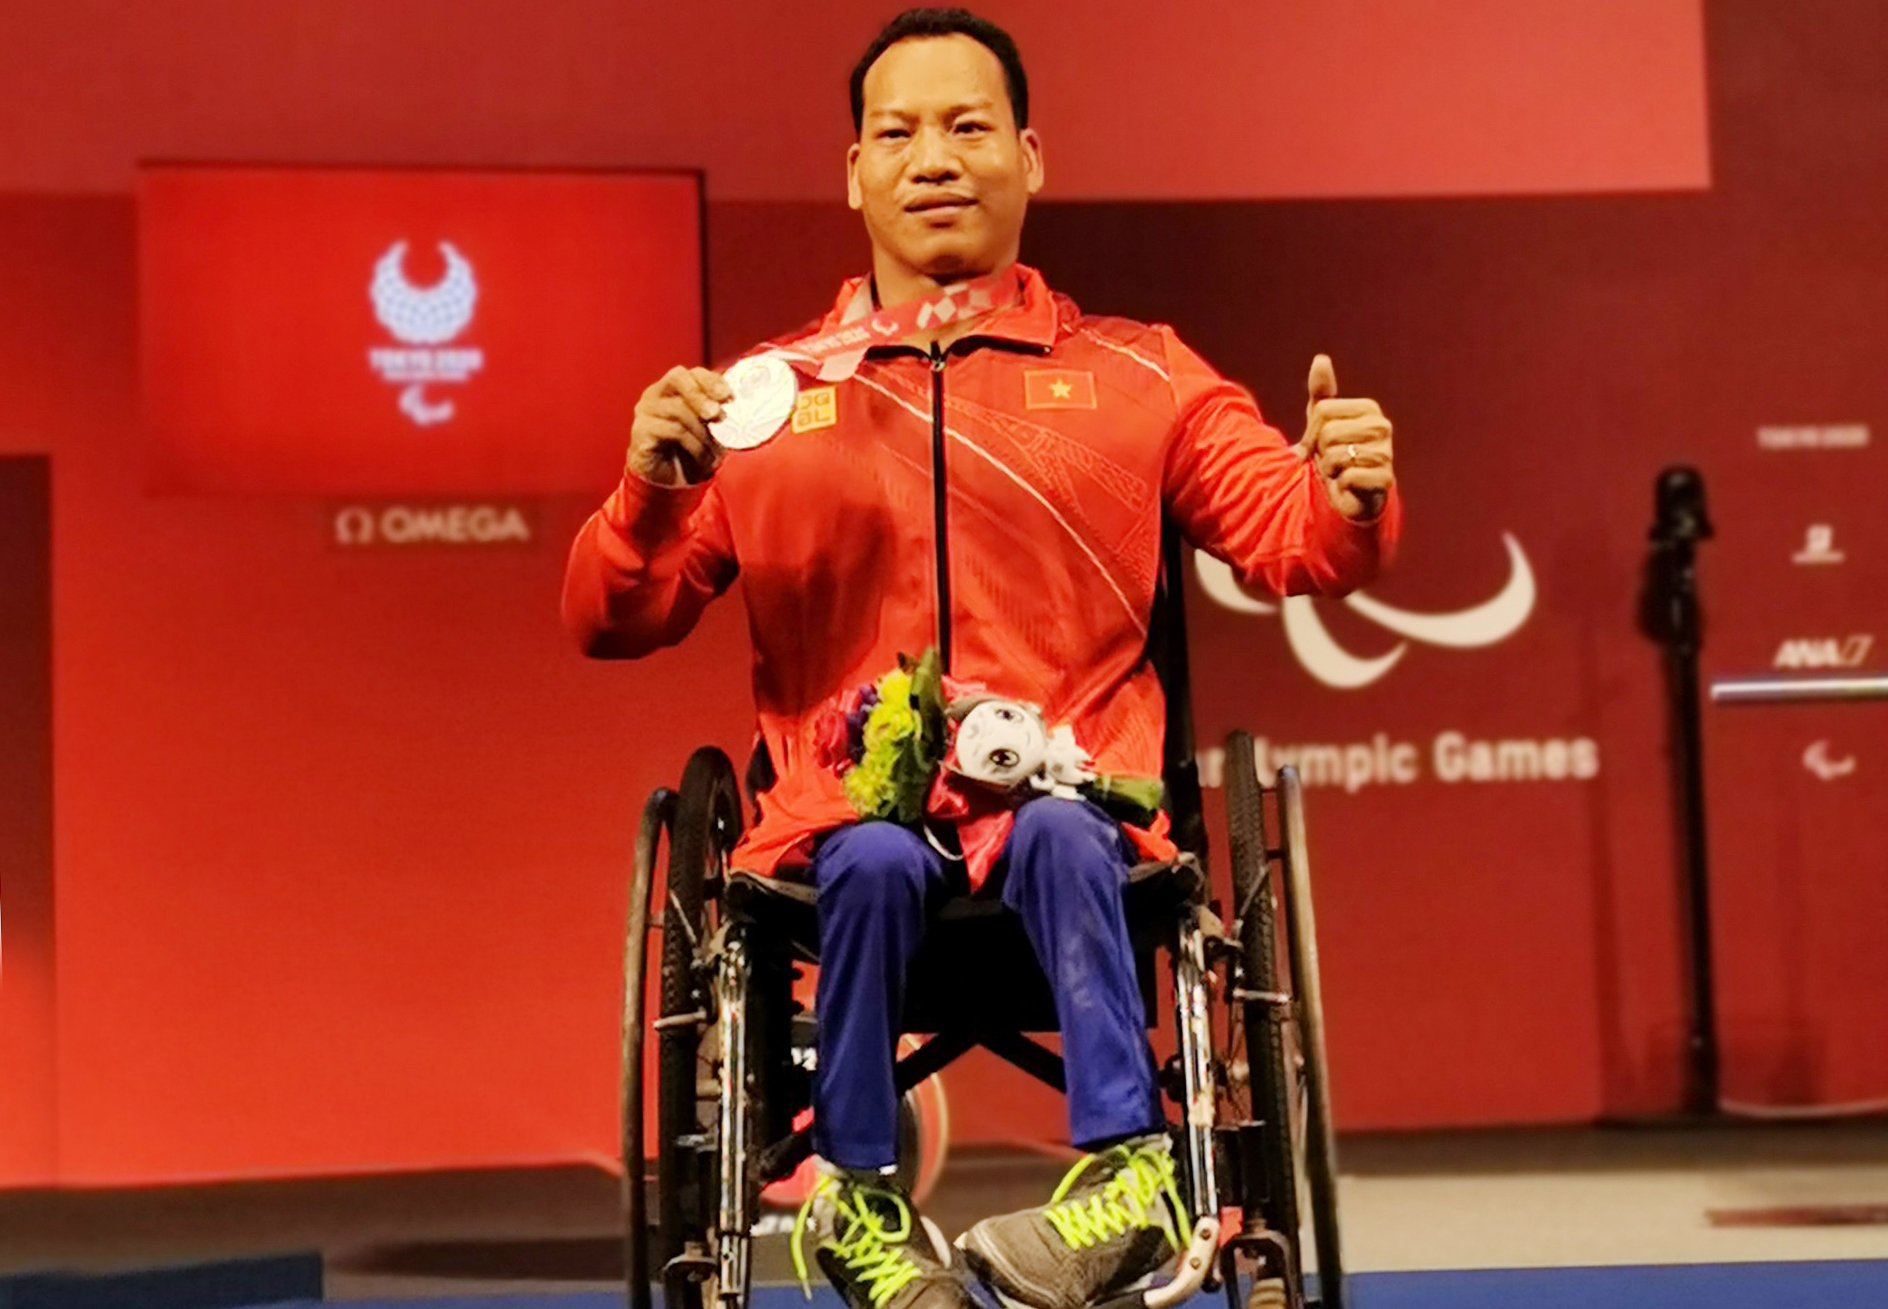 Le Van Recognition of silver medal at the Tokyo 2020 Paralympic Games, Japan.  Photo: TTVN Union